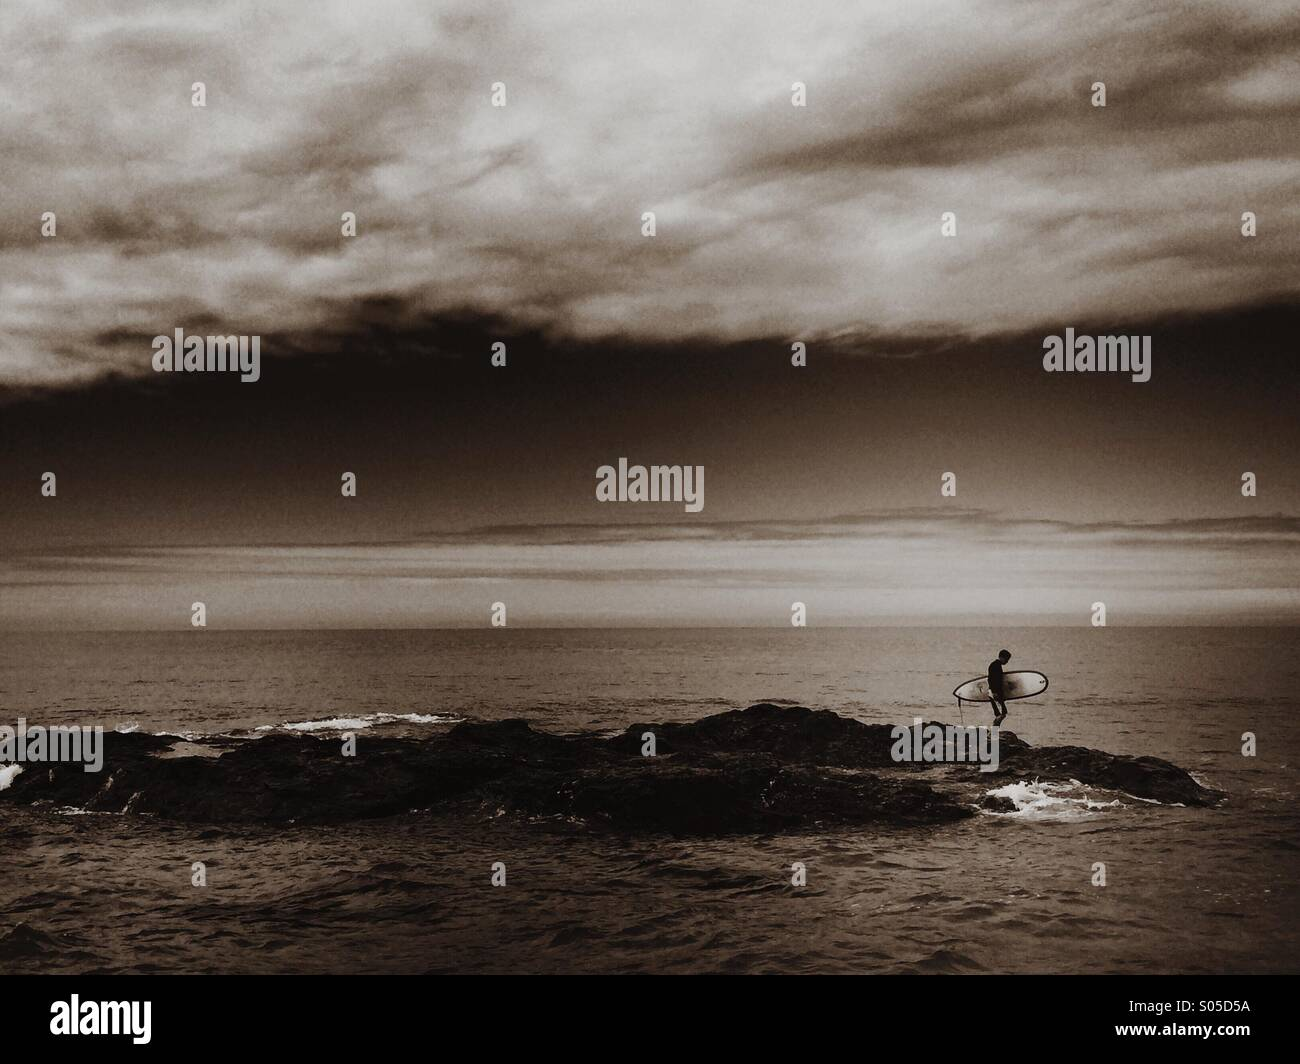 Surfer exploring the coast for waves. - Stock Image